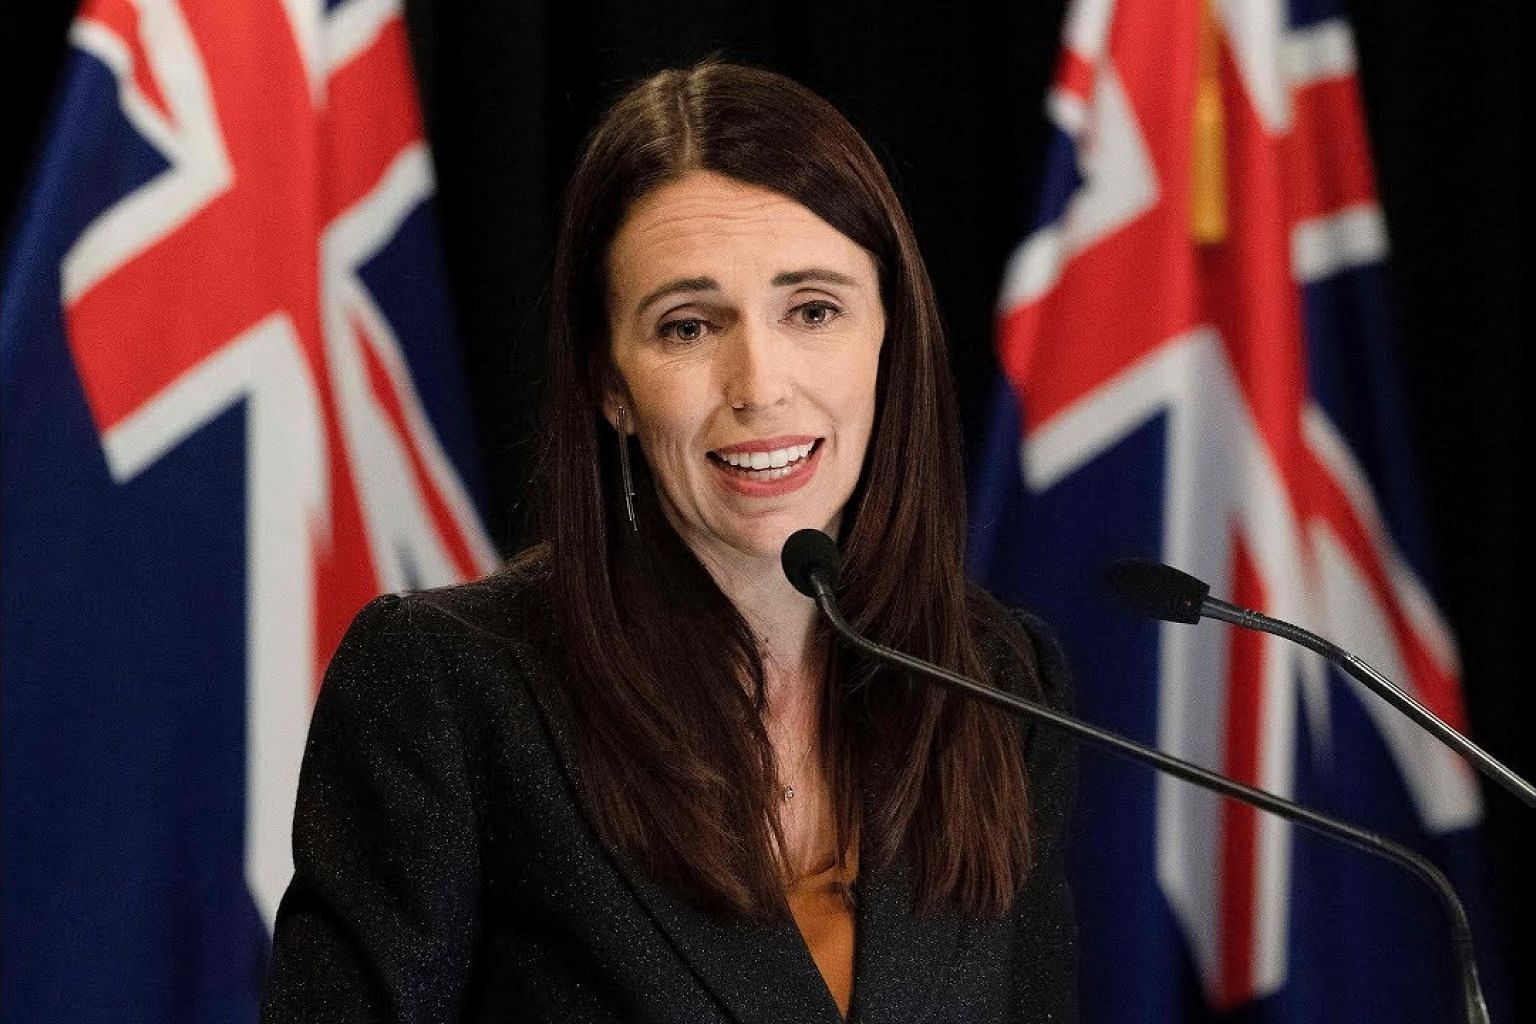 New Zealand PM announces royal commission inquiry into Christchurch attack